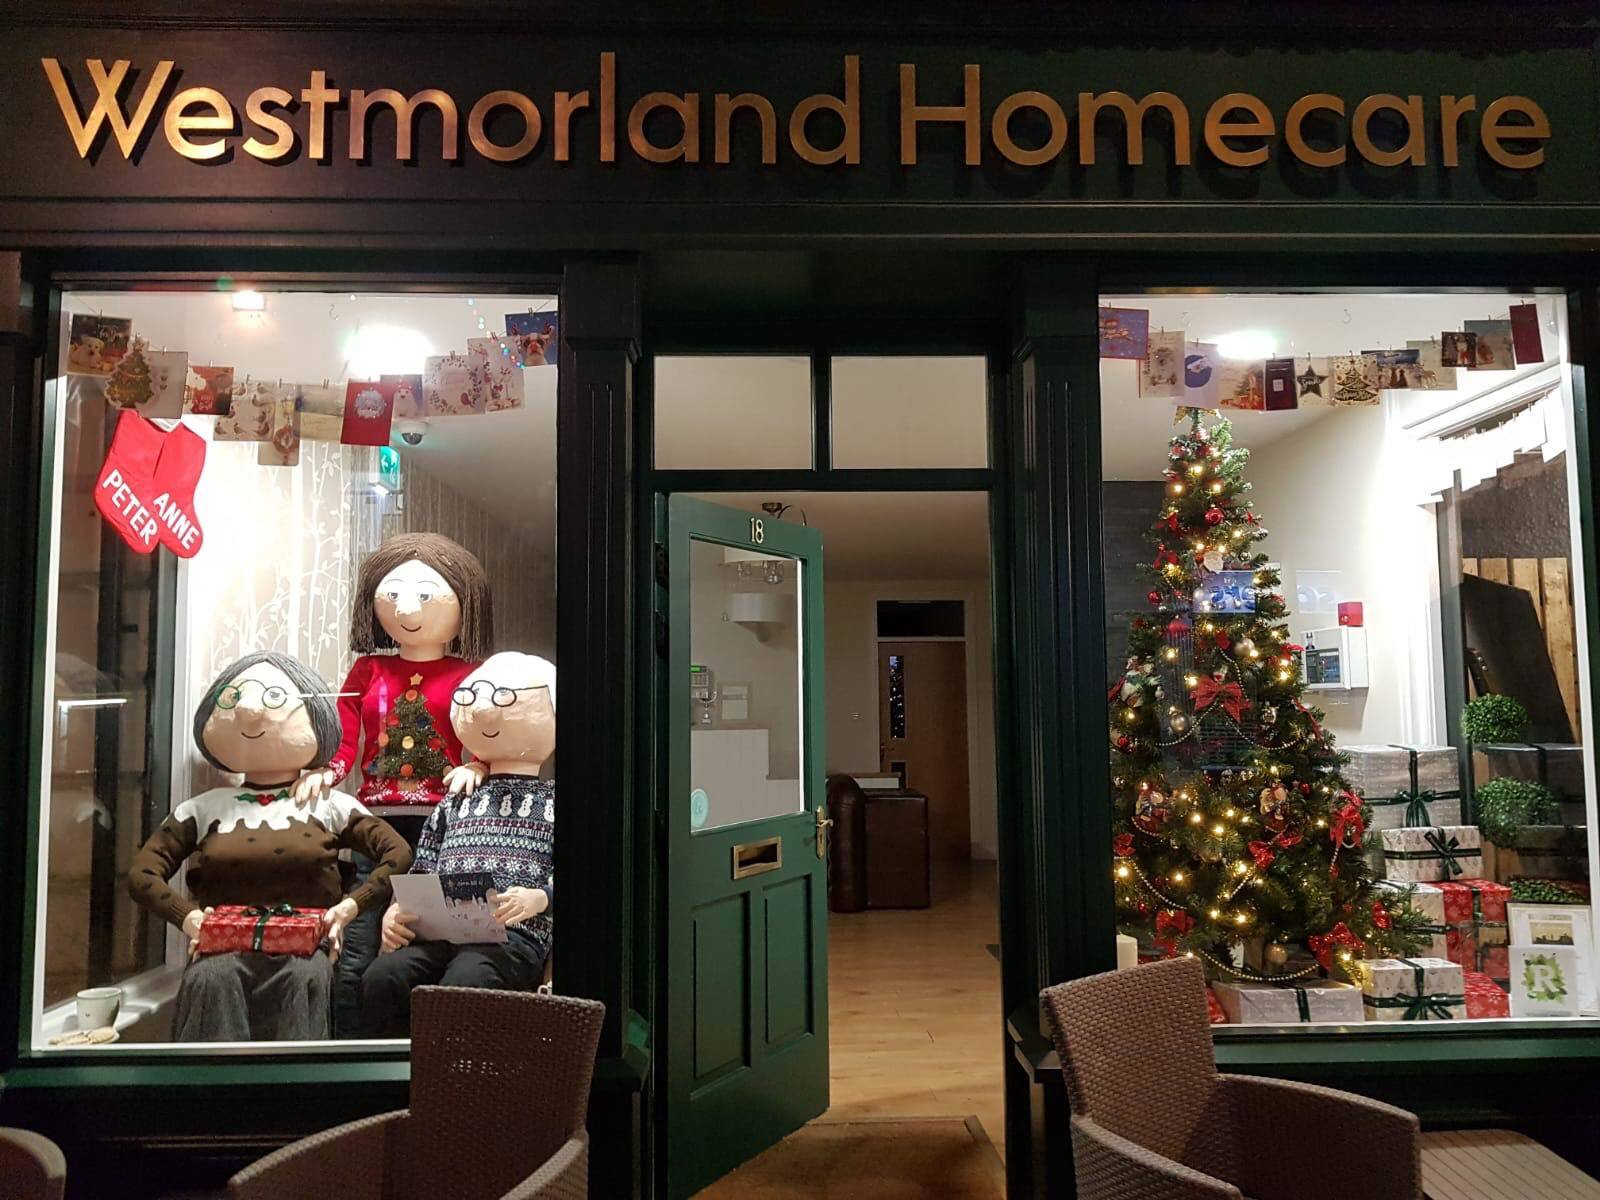 Charity transforms its window display for Christmas